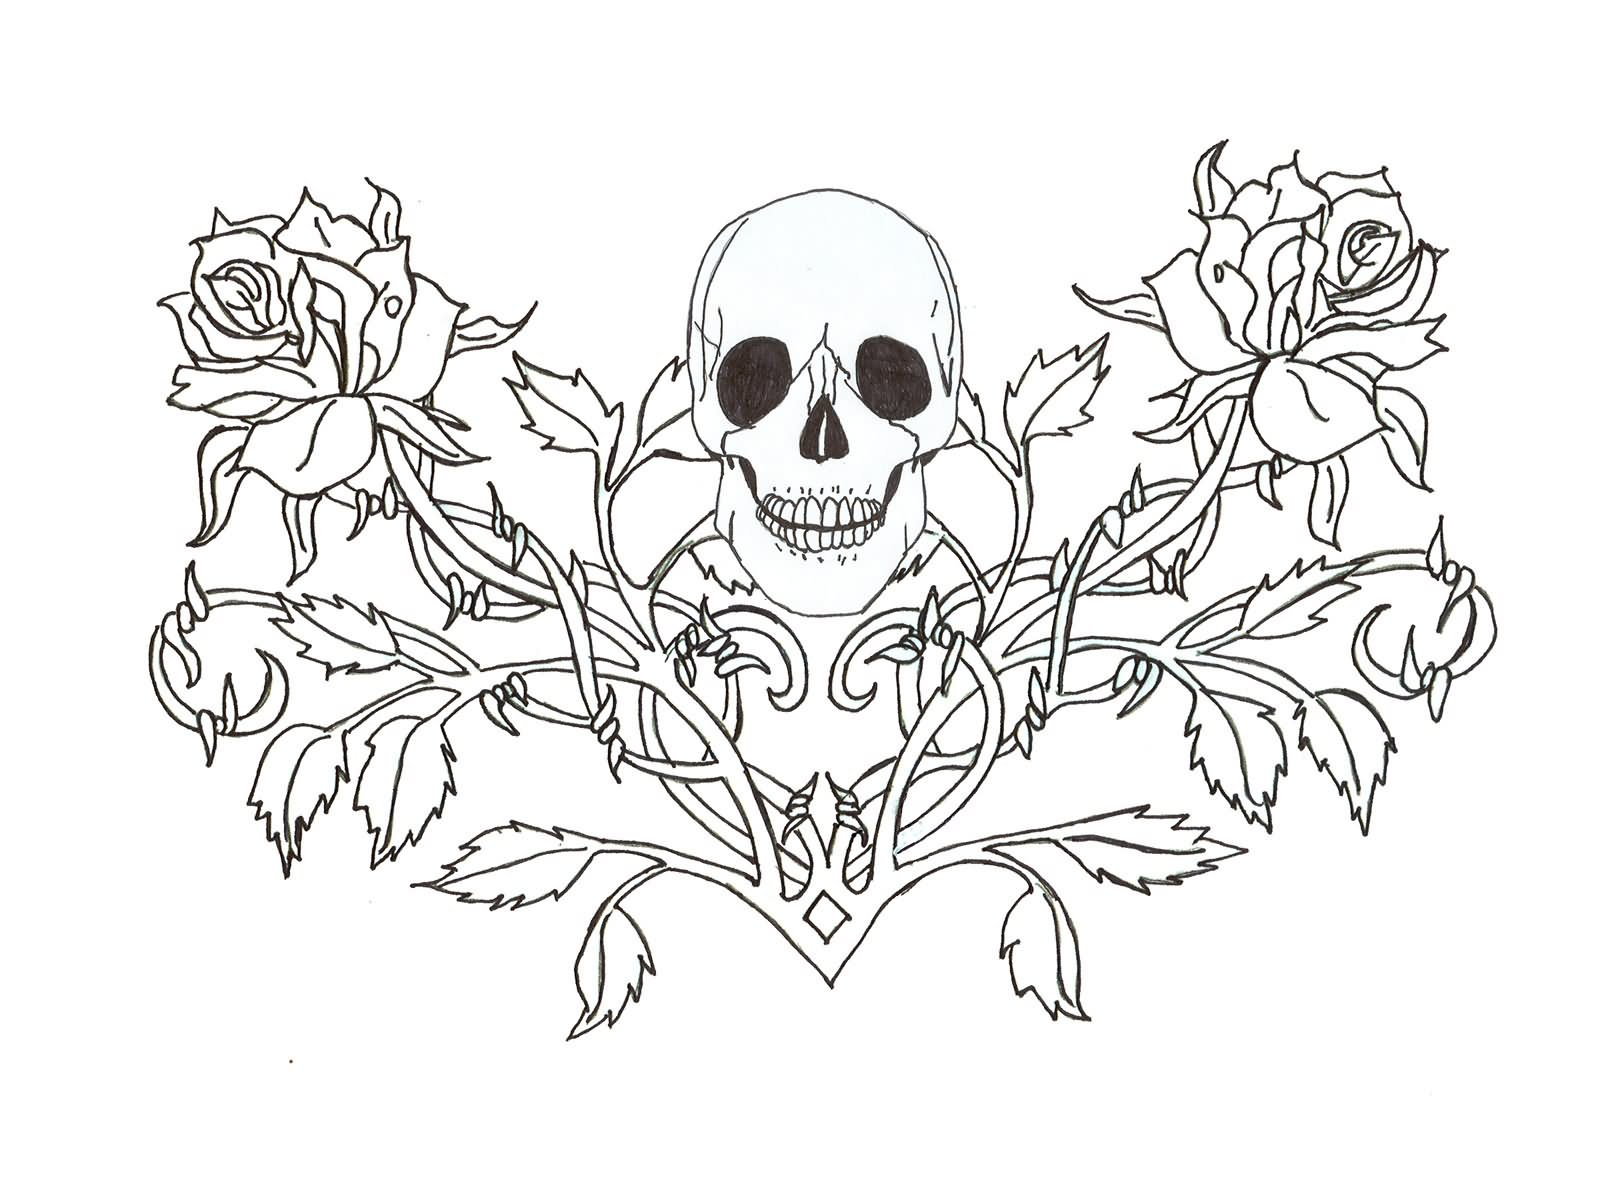 Black Outline Gothic Skull With Roses Tattoo Stencil By Quicksilverfury